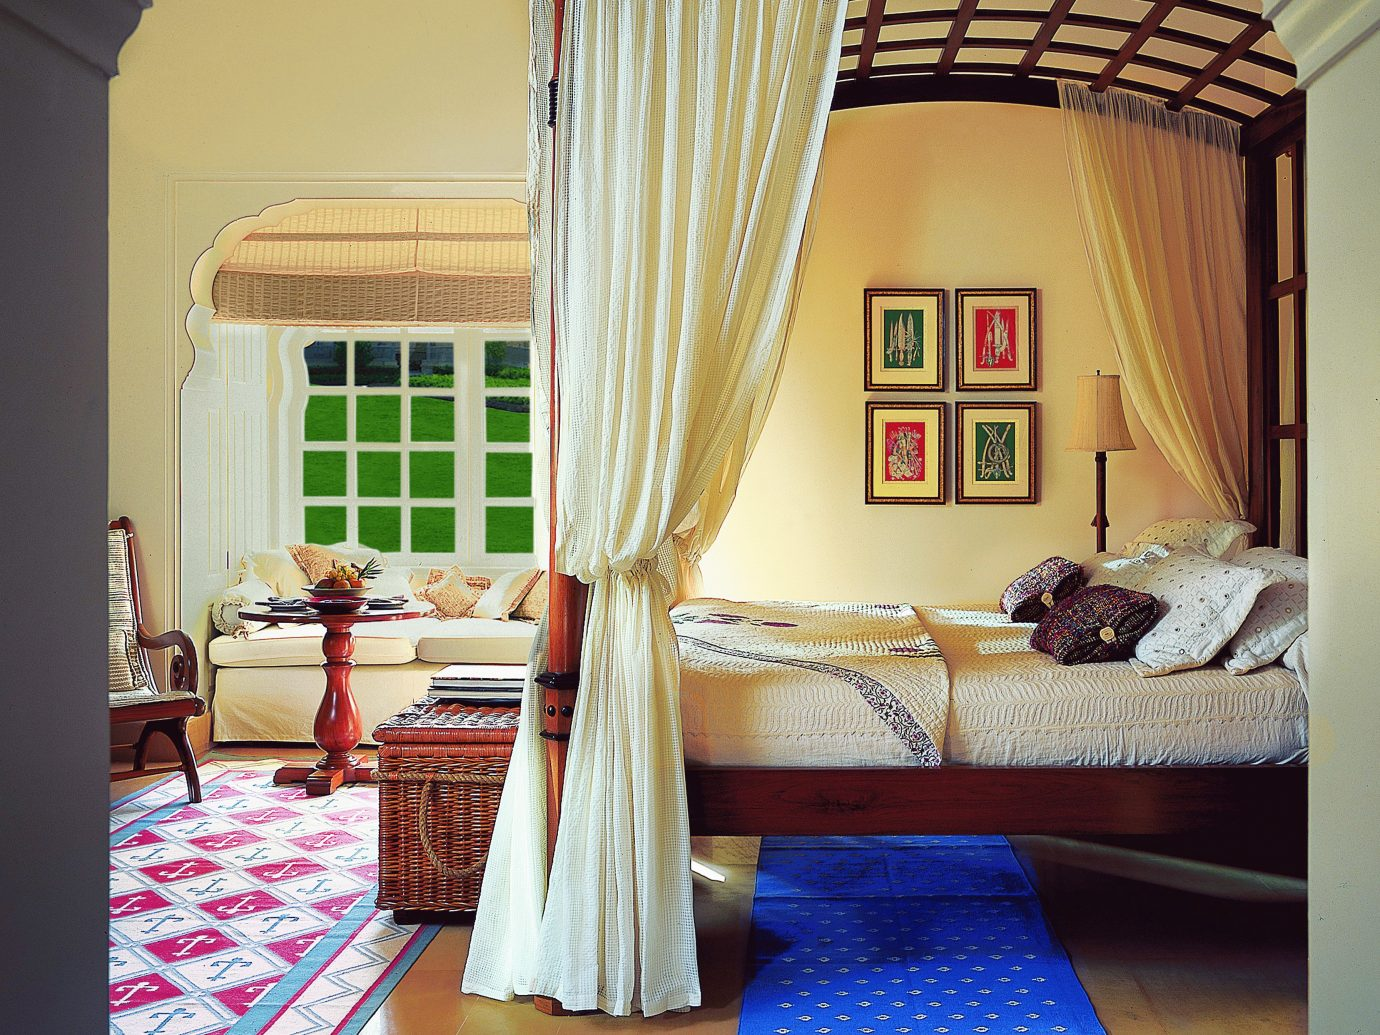 Bedroom Hotels Luxury Travel Suite indoor wall room Living property house living room home interior design cottage floor curtain estate window covering bed window treatment window apartment farmhouse Villa furniture decorated colorful